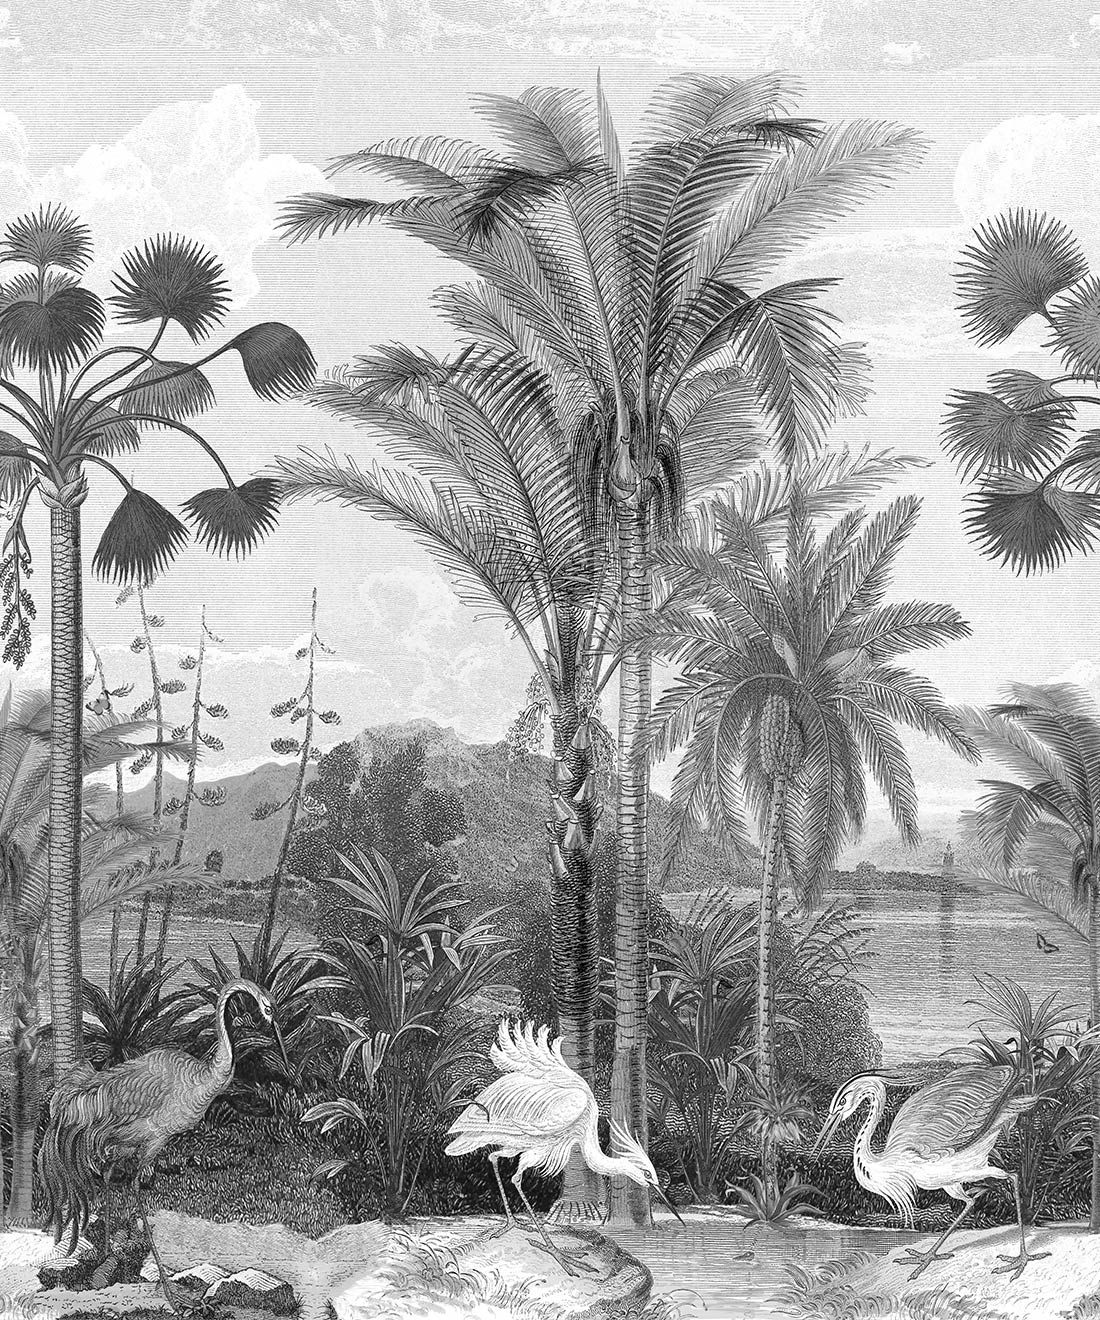 Indian Subcontinent Wallpaper Mural •Bethany Linz • Palm Tree Mural • Black & White • Swatch